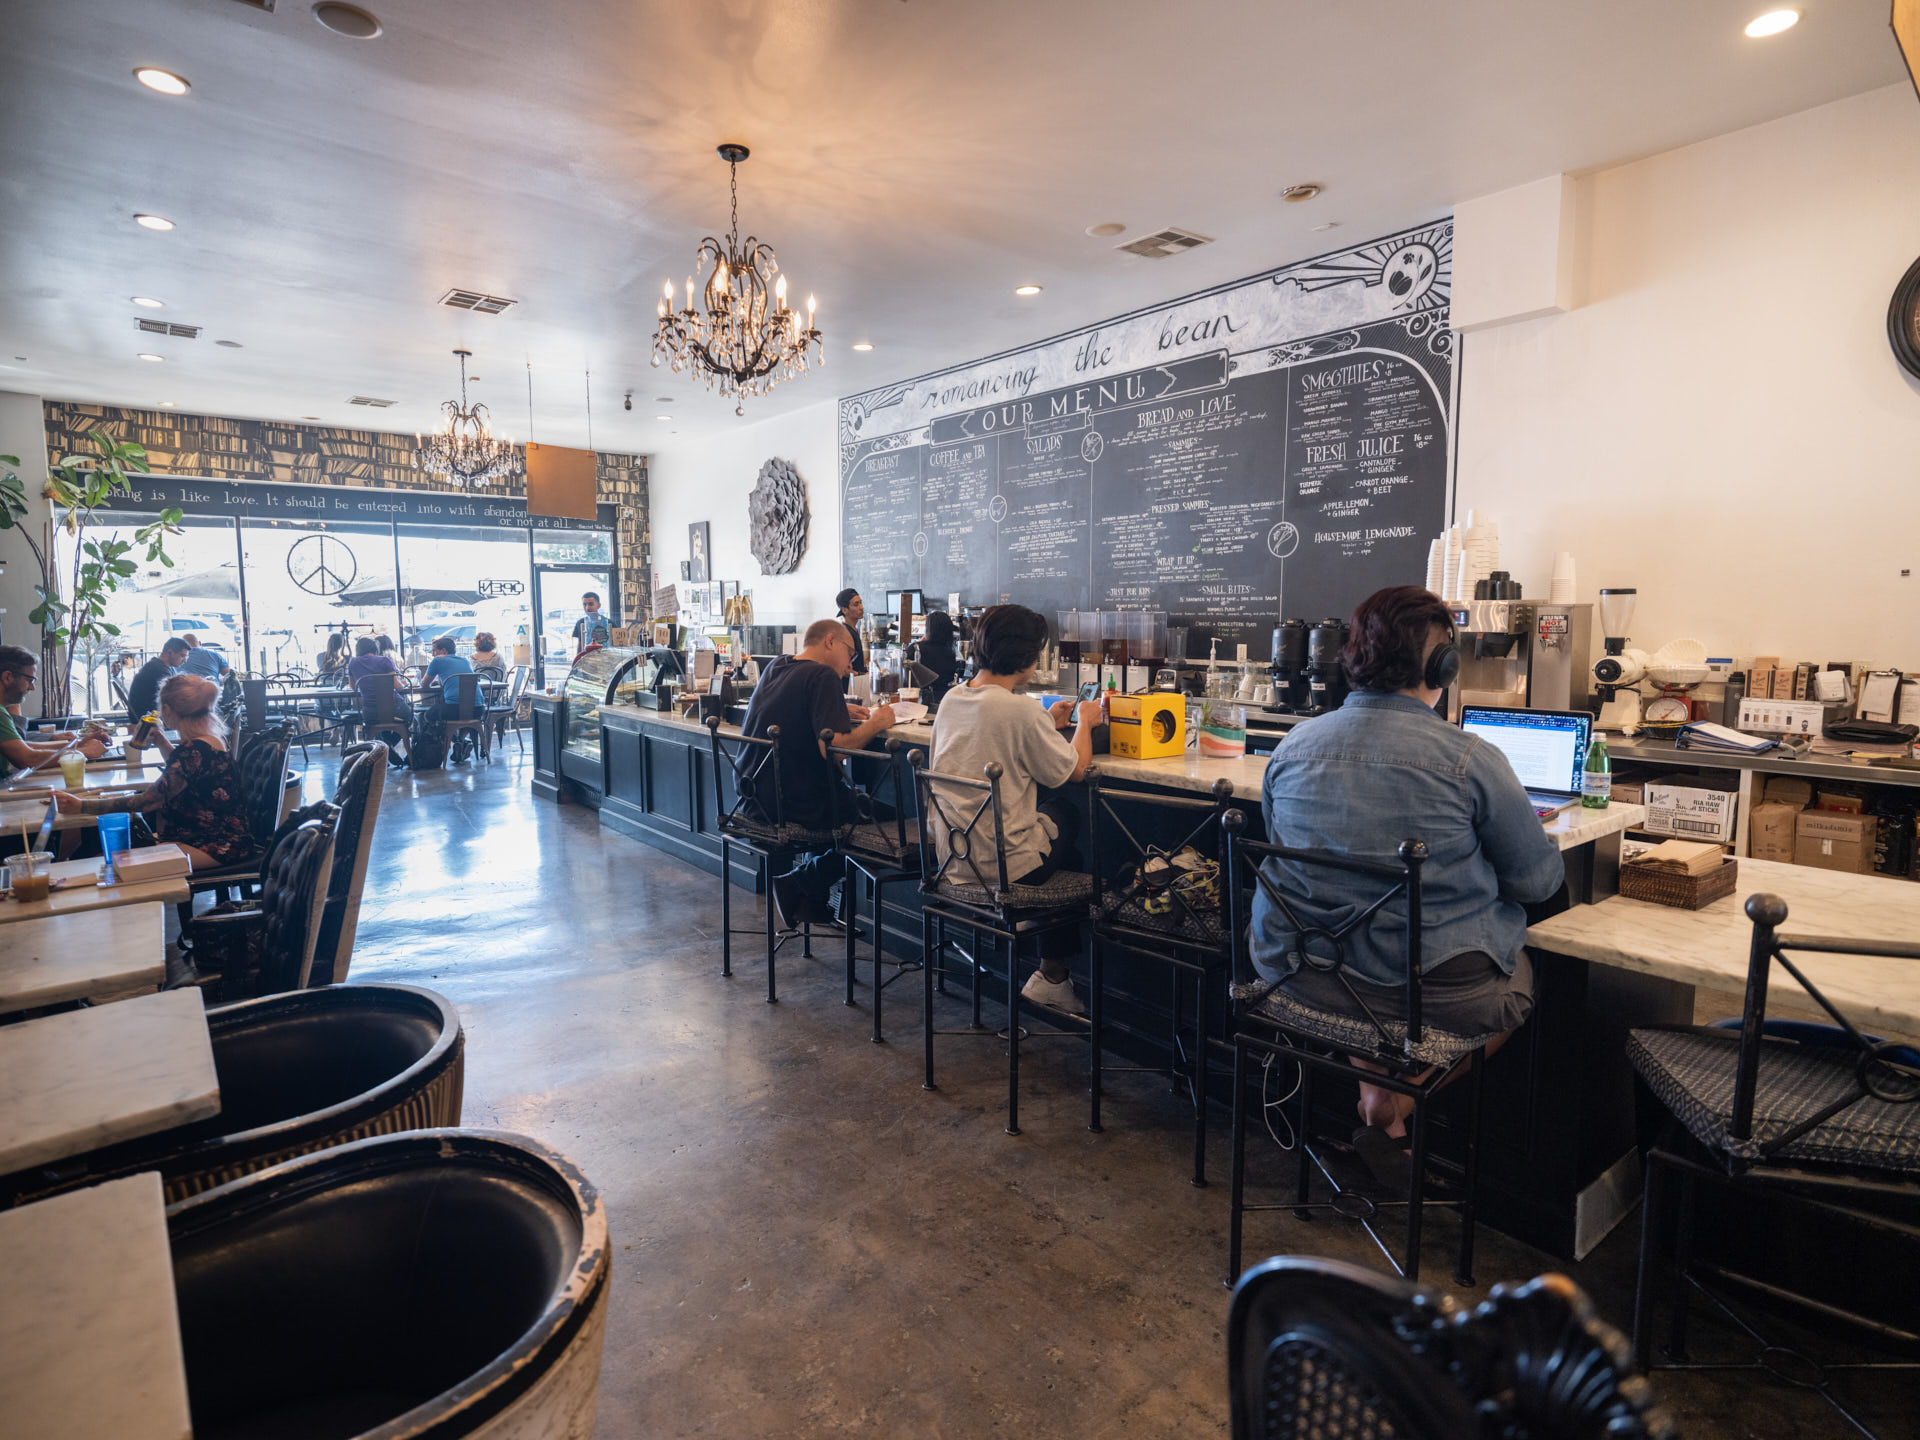 local-coffee-shops-are-grounded-in-community-8-romancing-the-bean